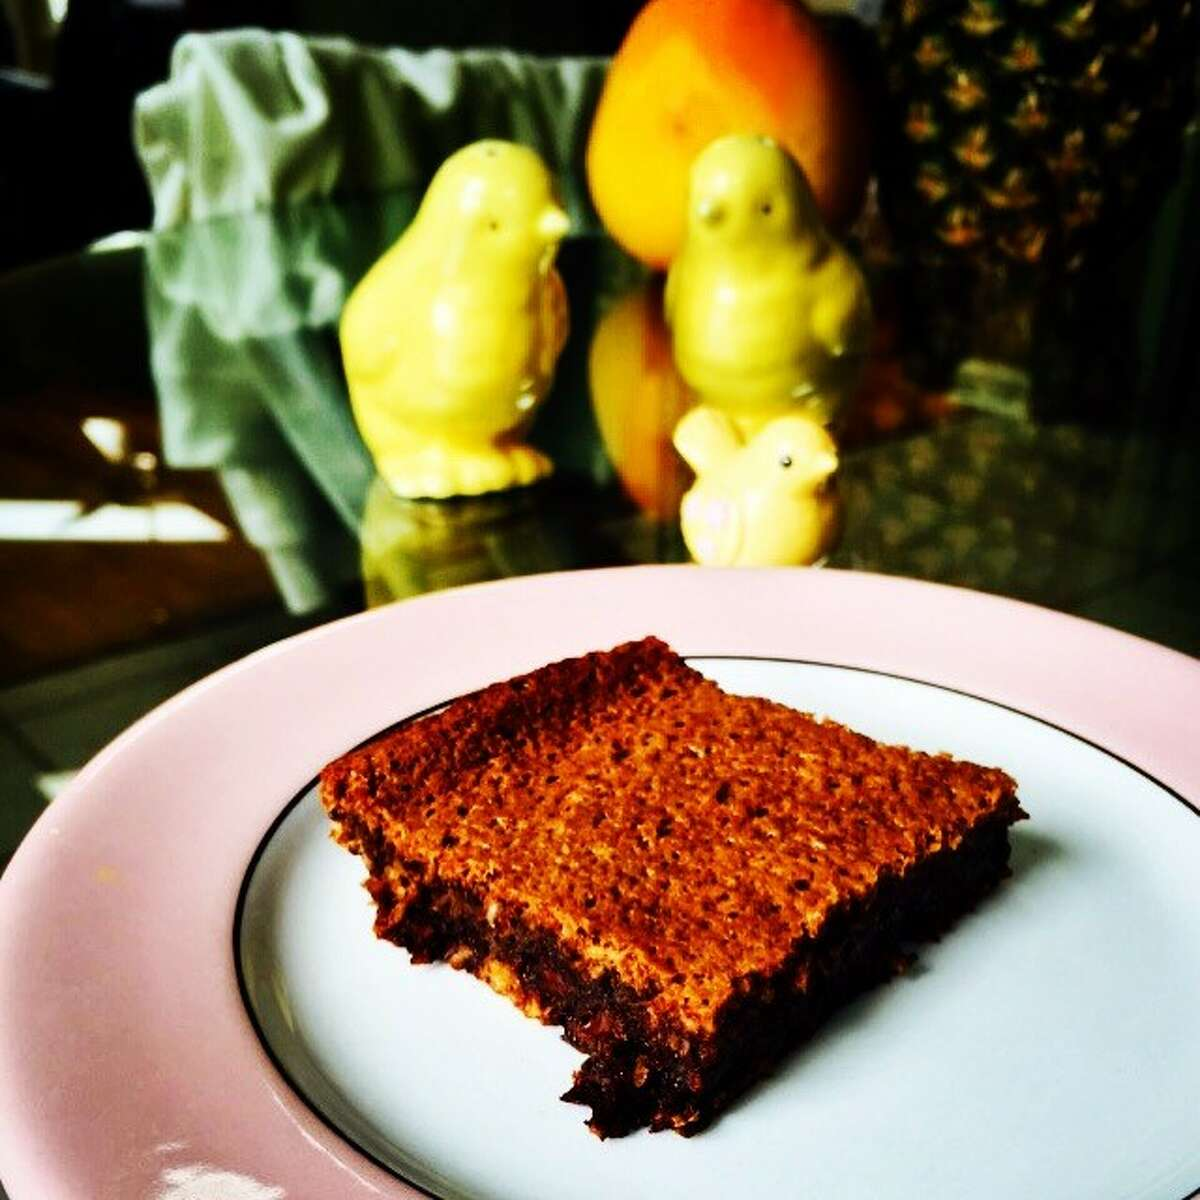 A grain-free brownie. (Photo by Stacey Morris)